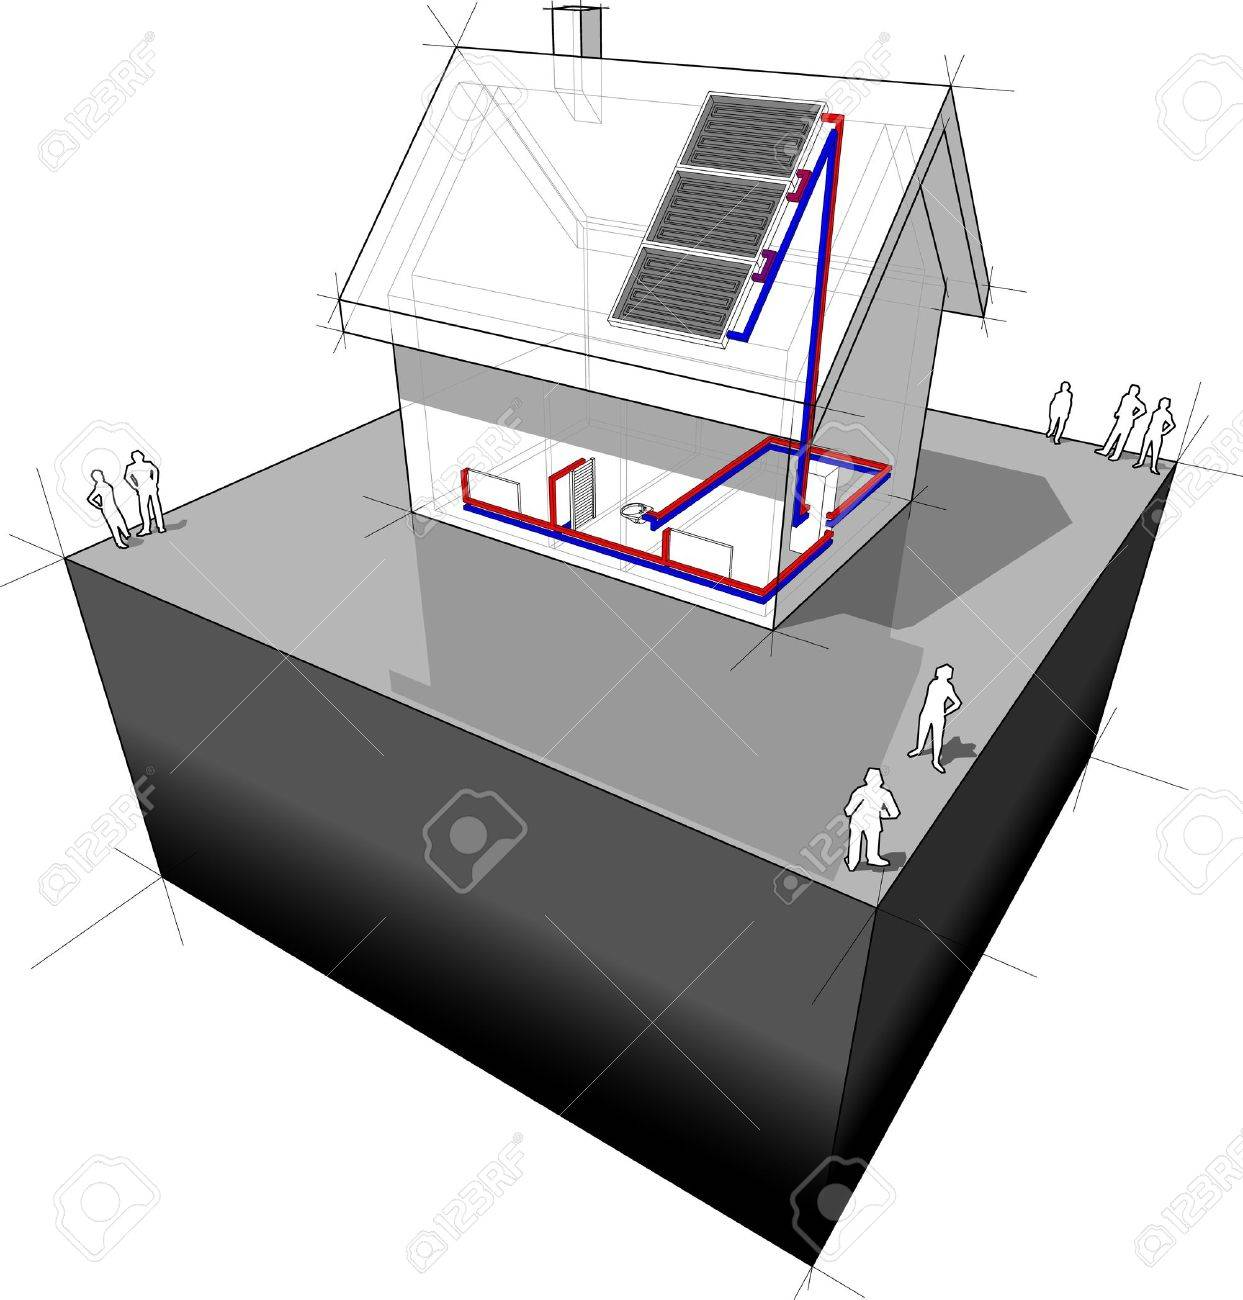 Diagram Of A Detached House Heated By Solar Panel Royalty Free Stock Vector 14566301